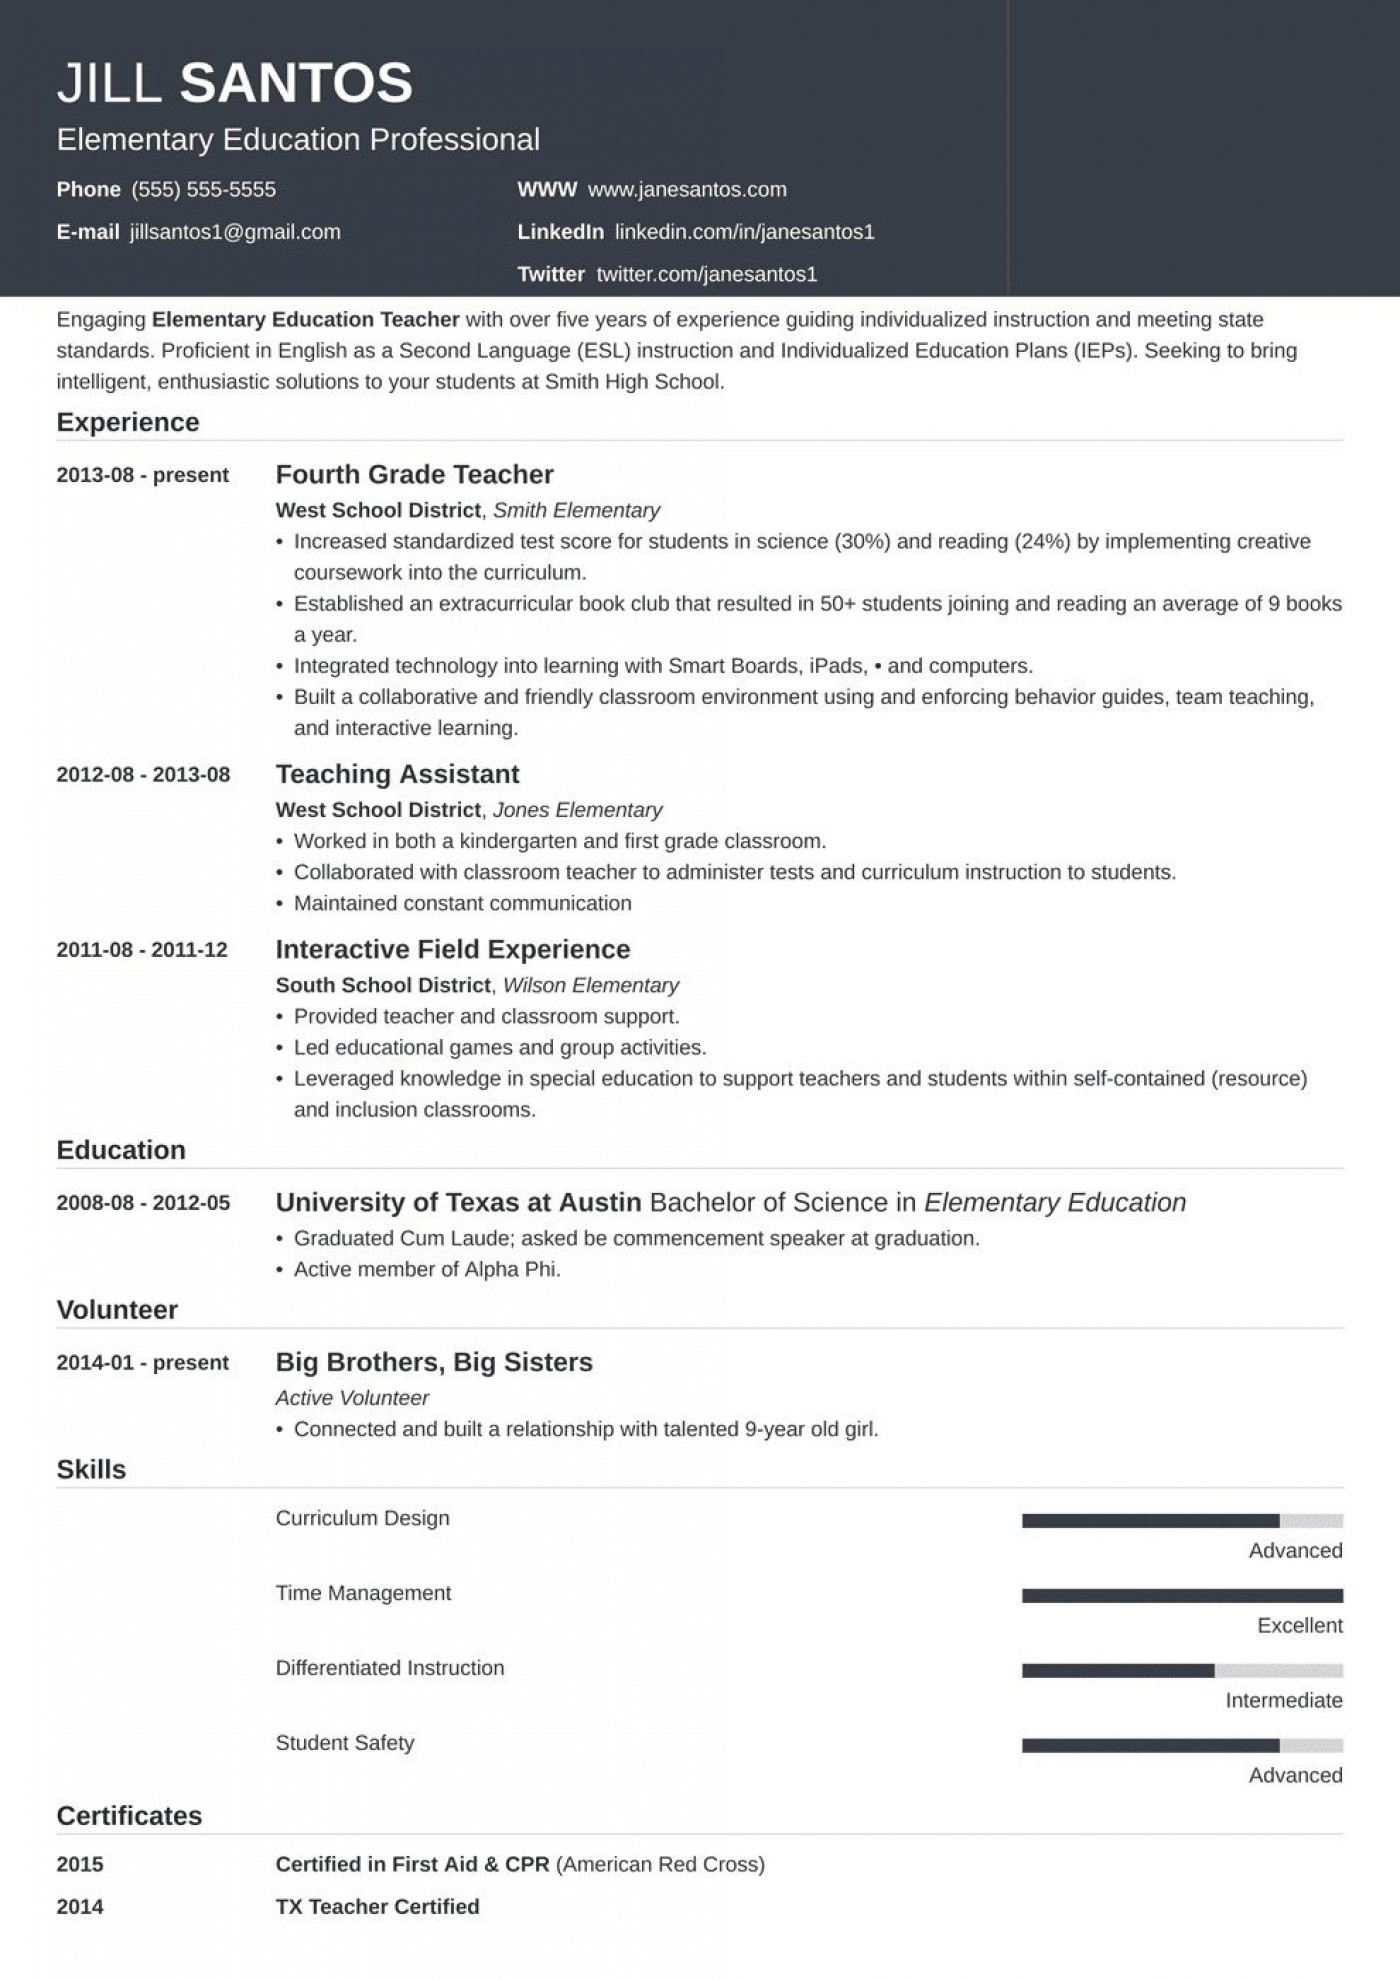 004 Archaicawful Resume Template For Teacher Highest Clarity  Australia Microsoft Word Sample1400